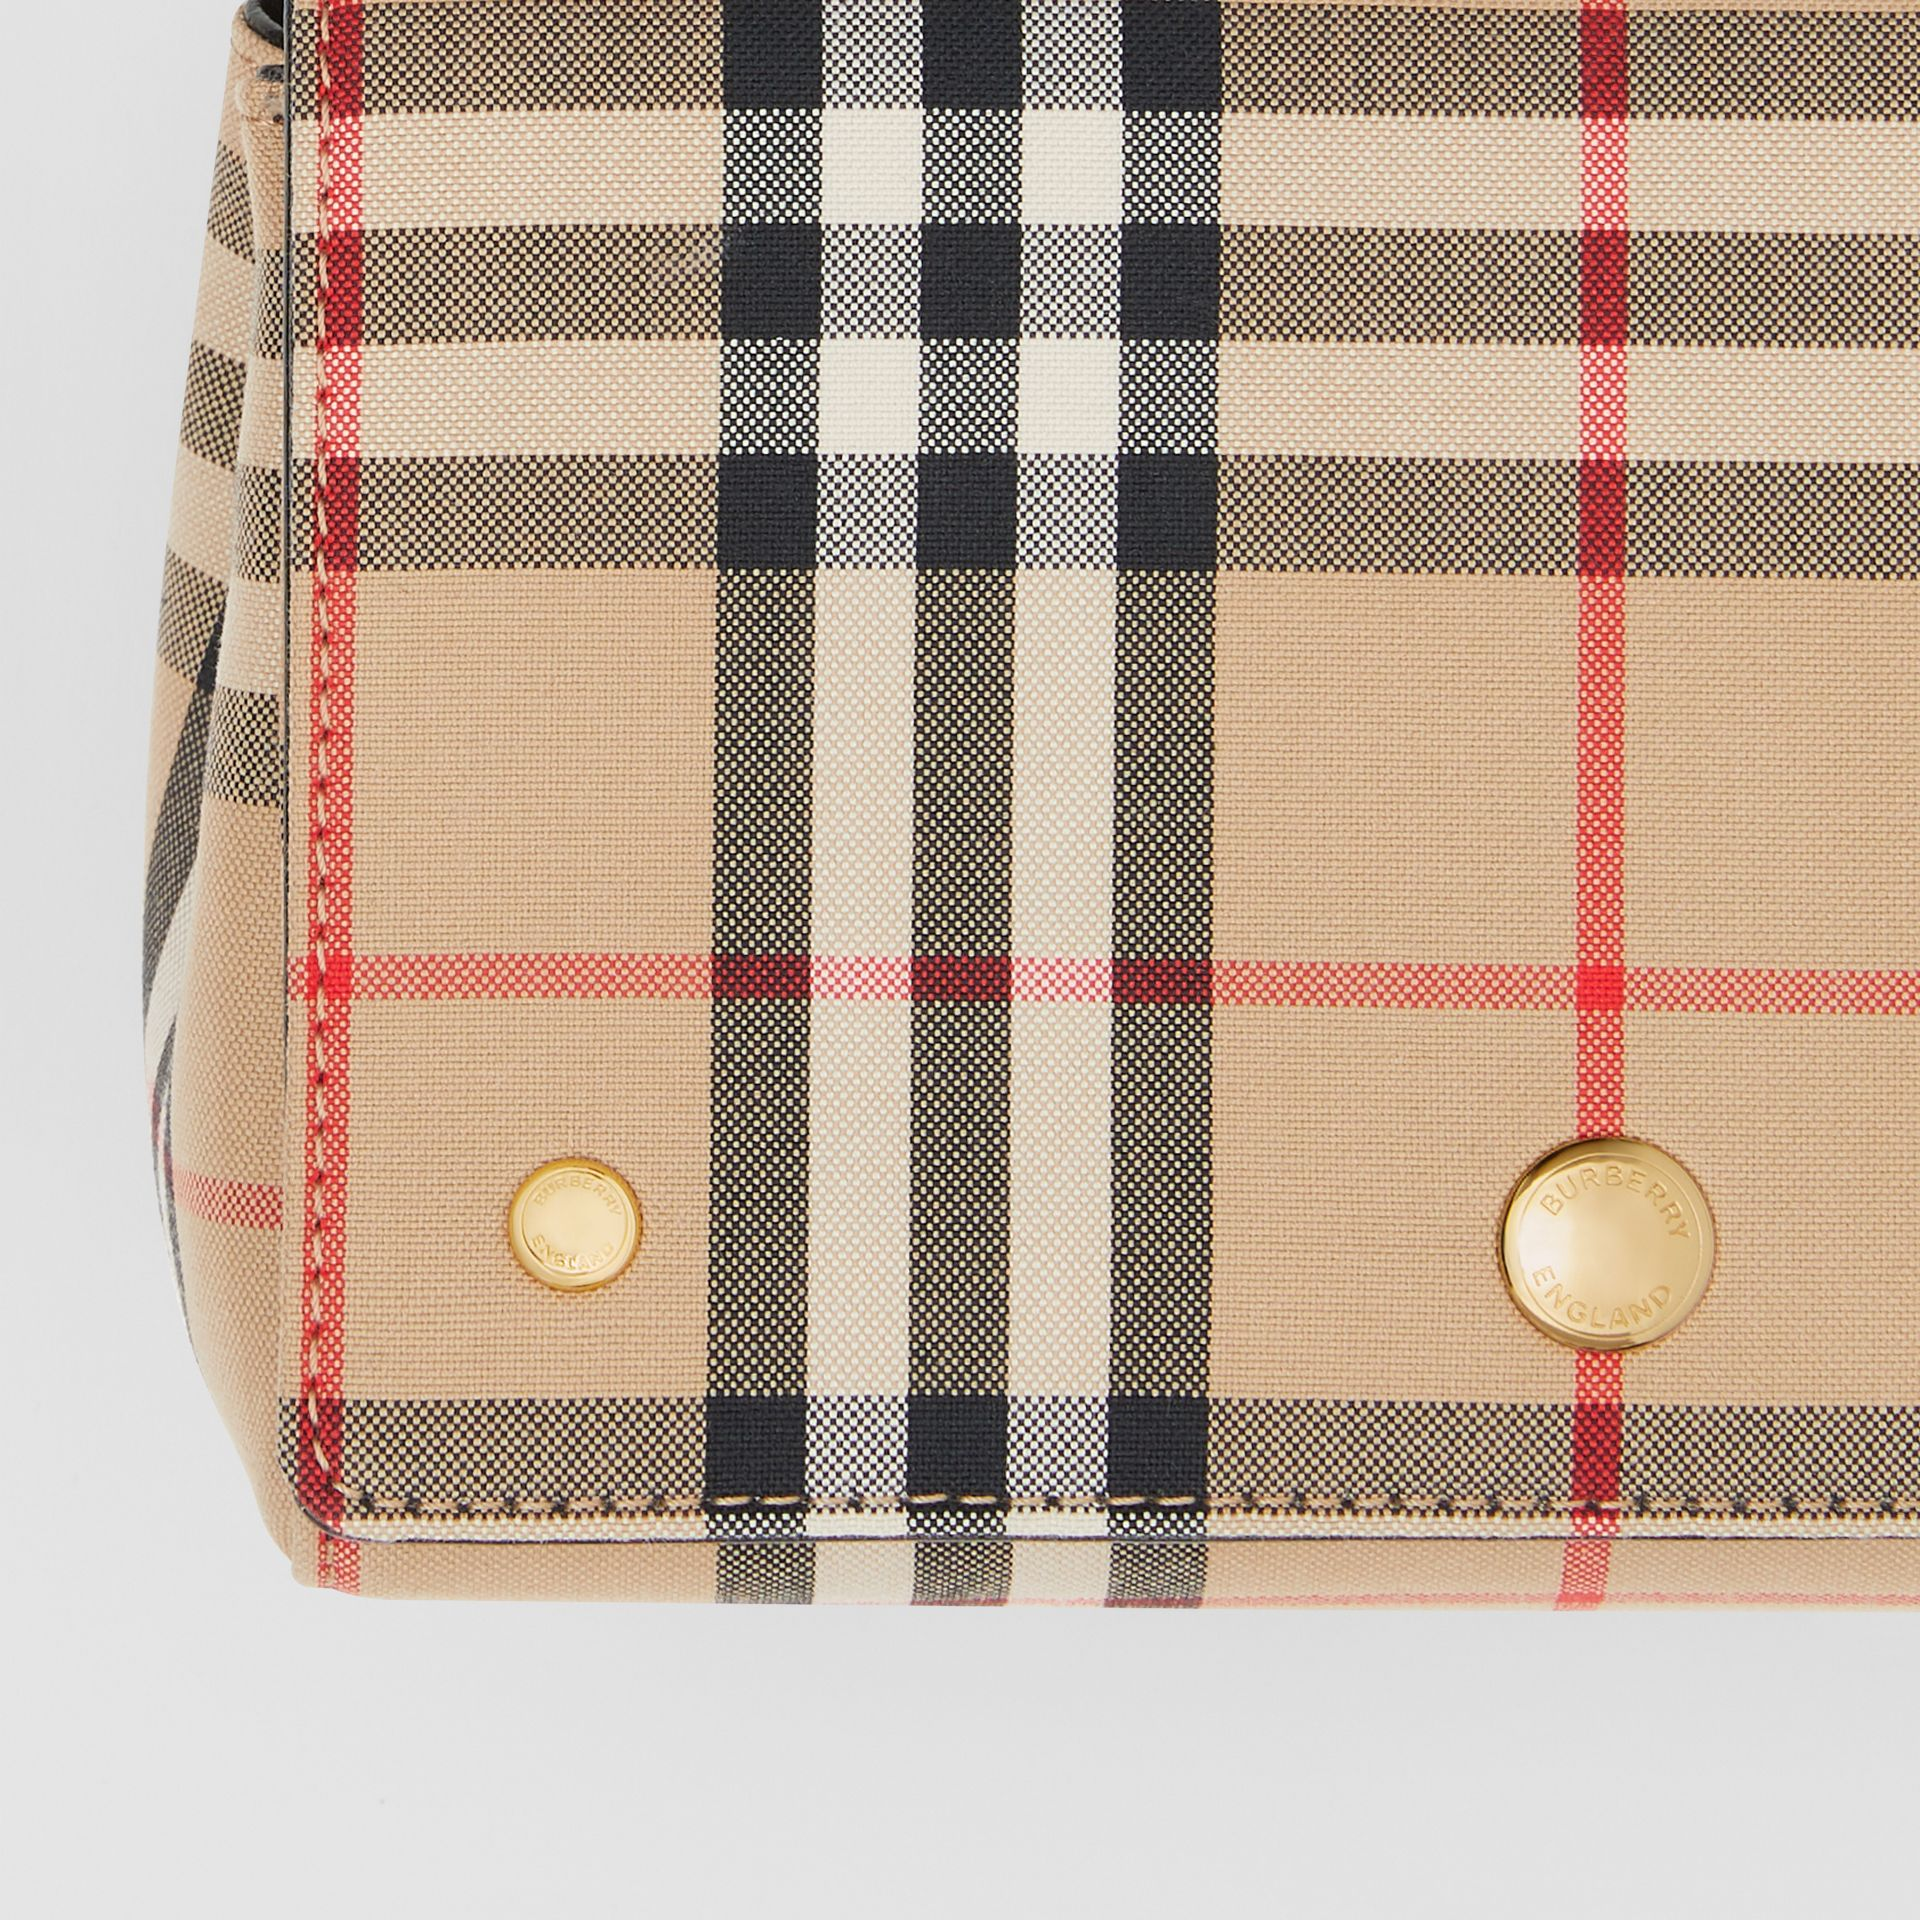 Vintage Check and Leather Note Crossbody Bag in Archive Beige/black | Burberry - gallery image 1